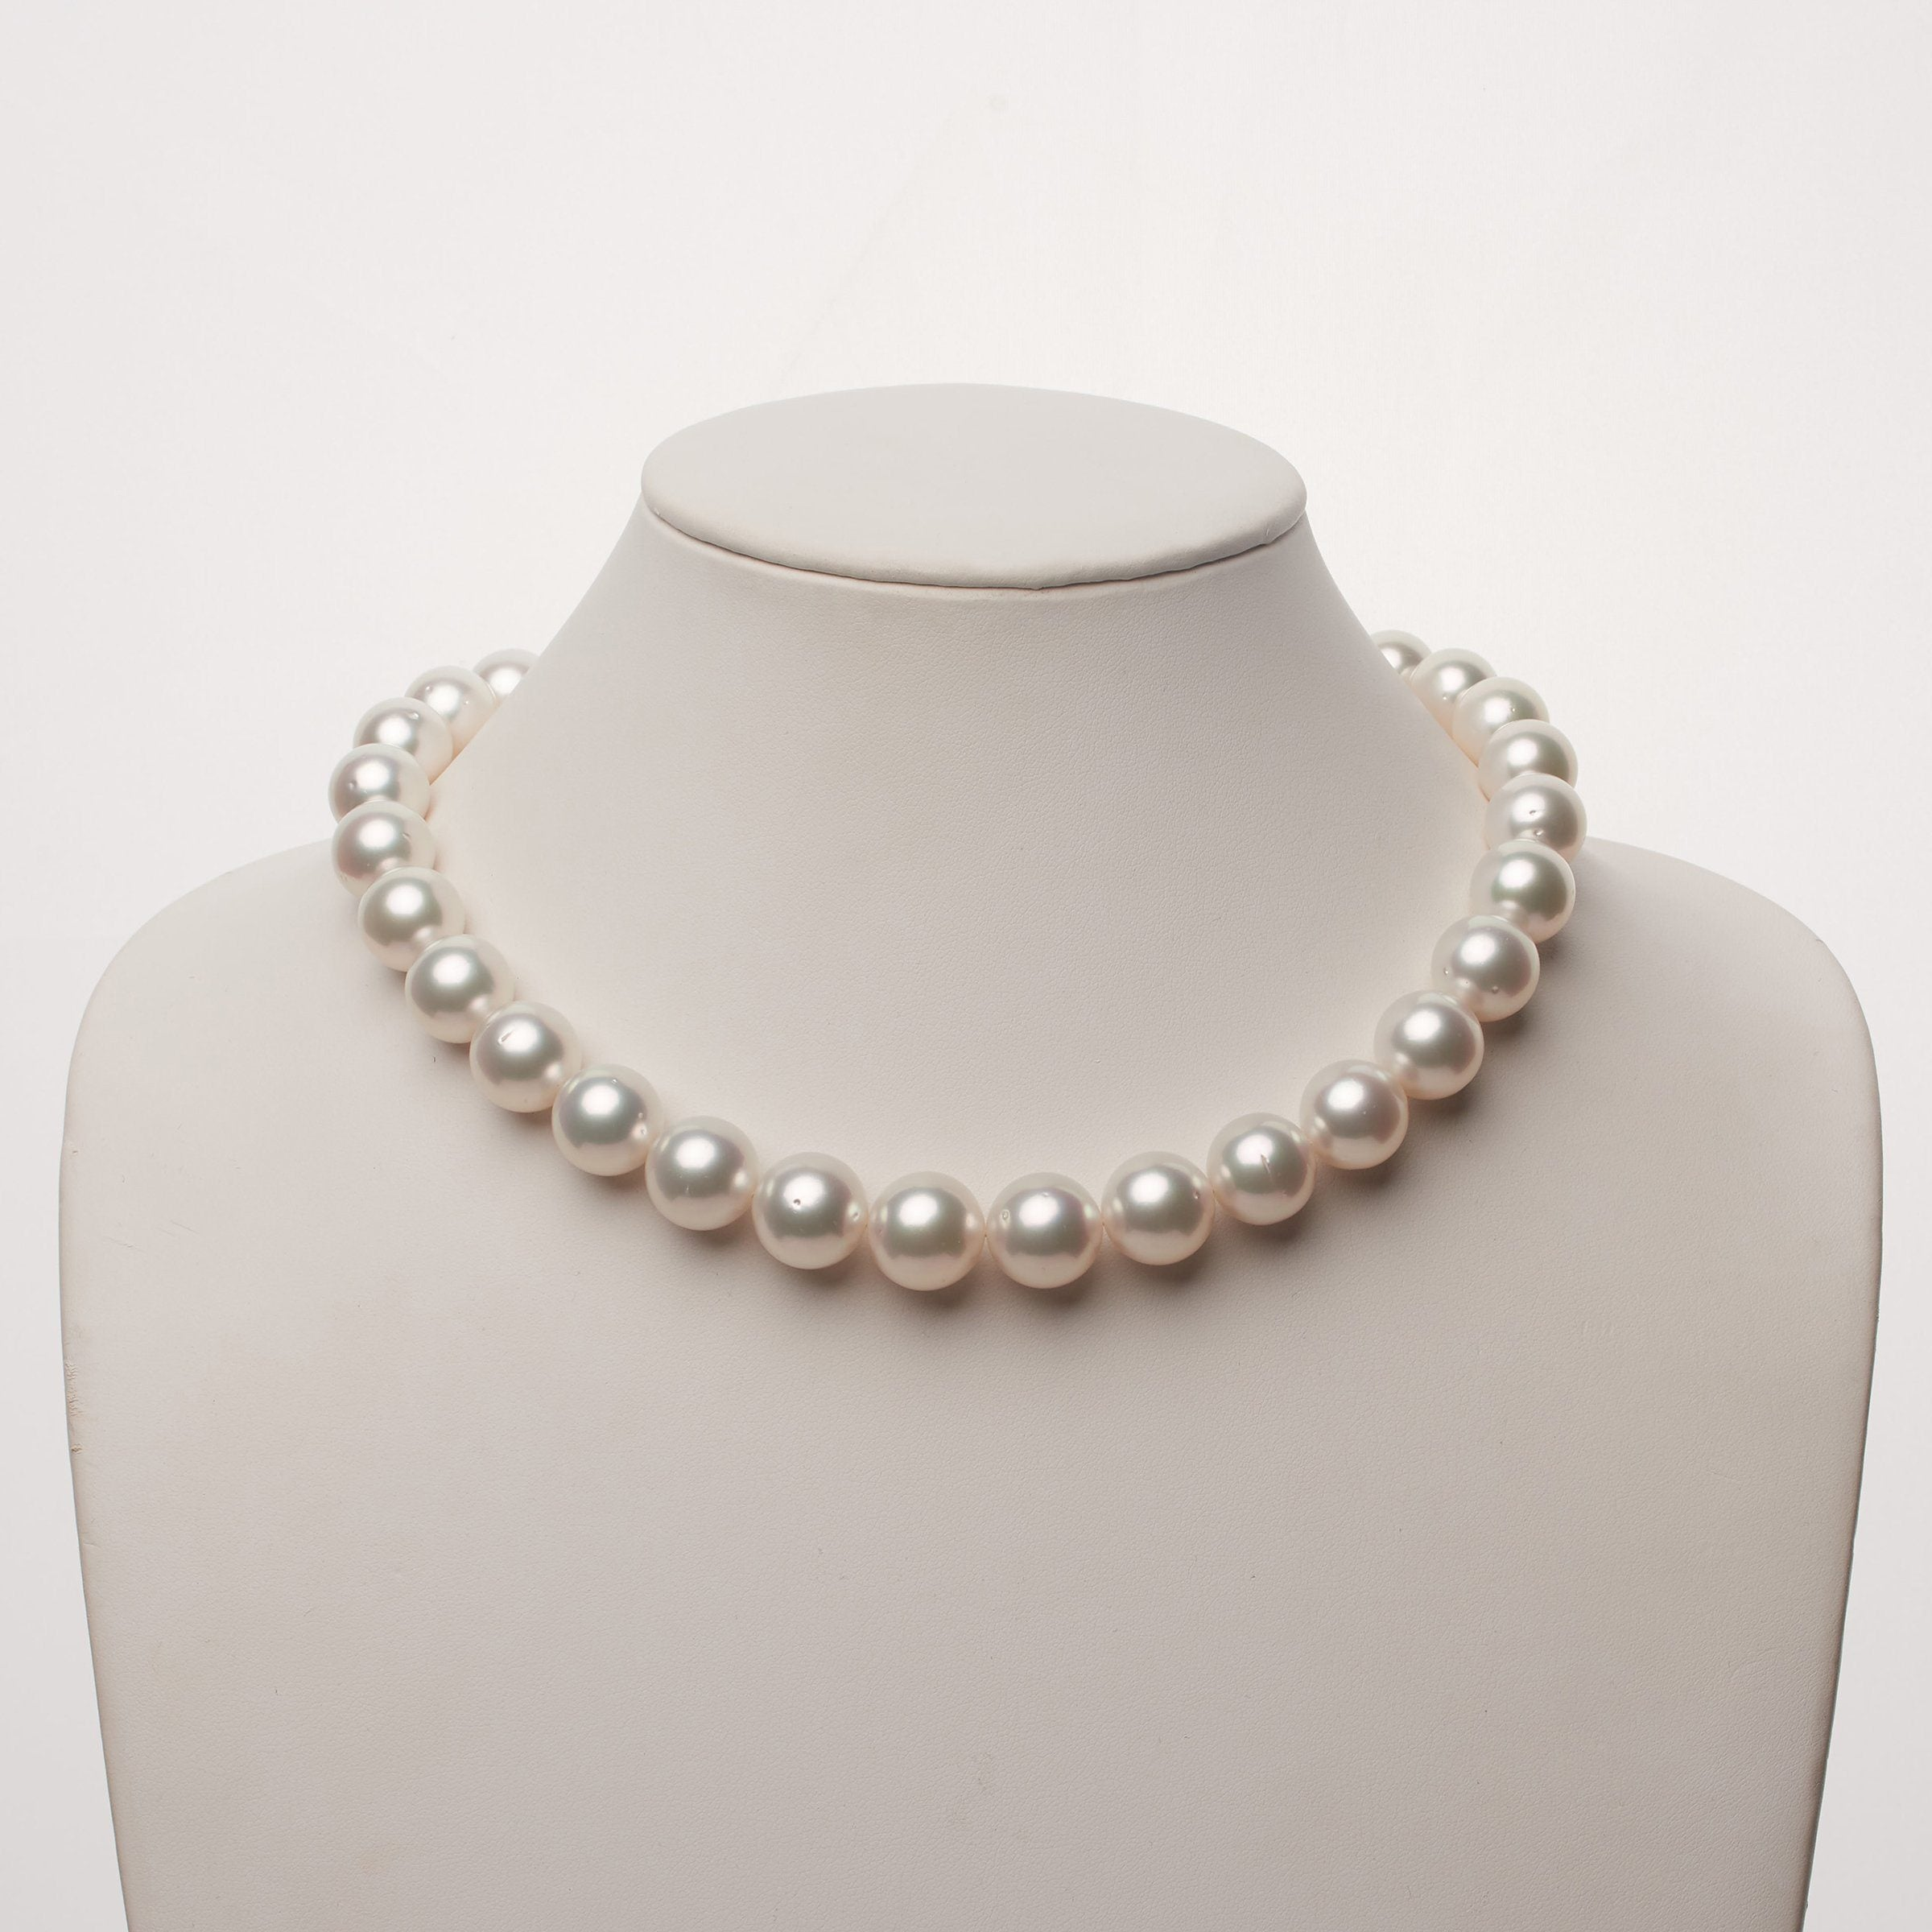 13.0-15.1 mm AA+ White South Sea Round Pearl Necklace